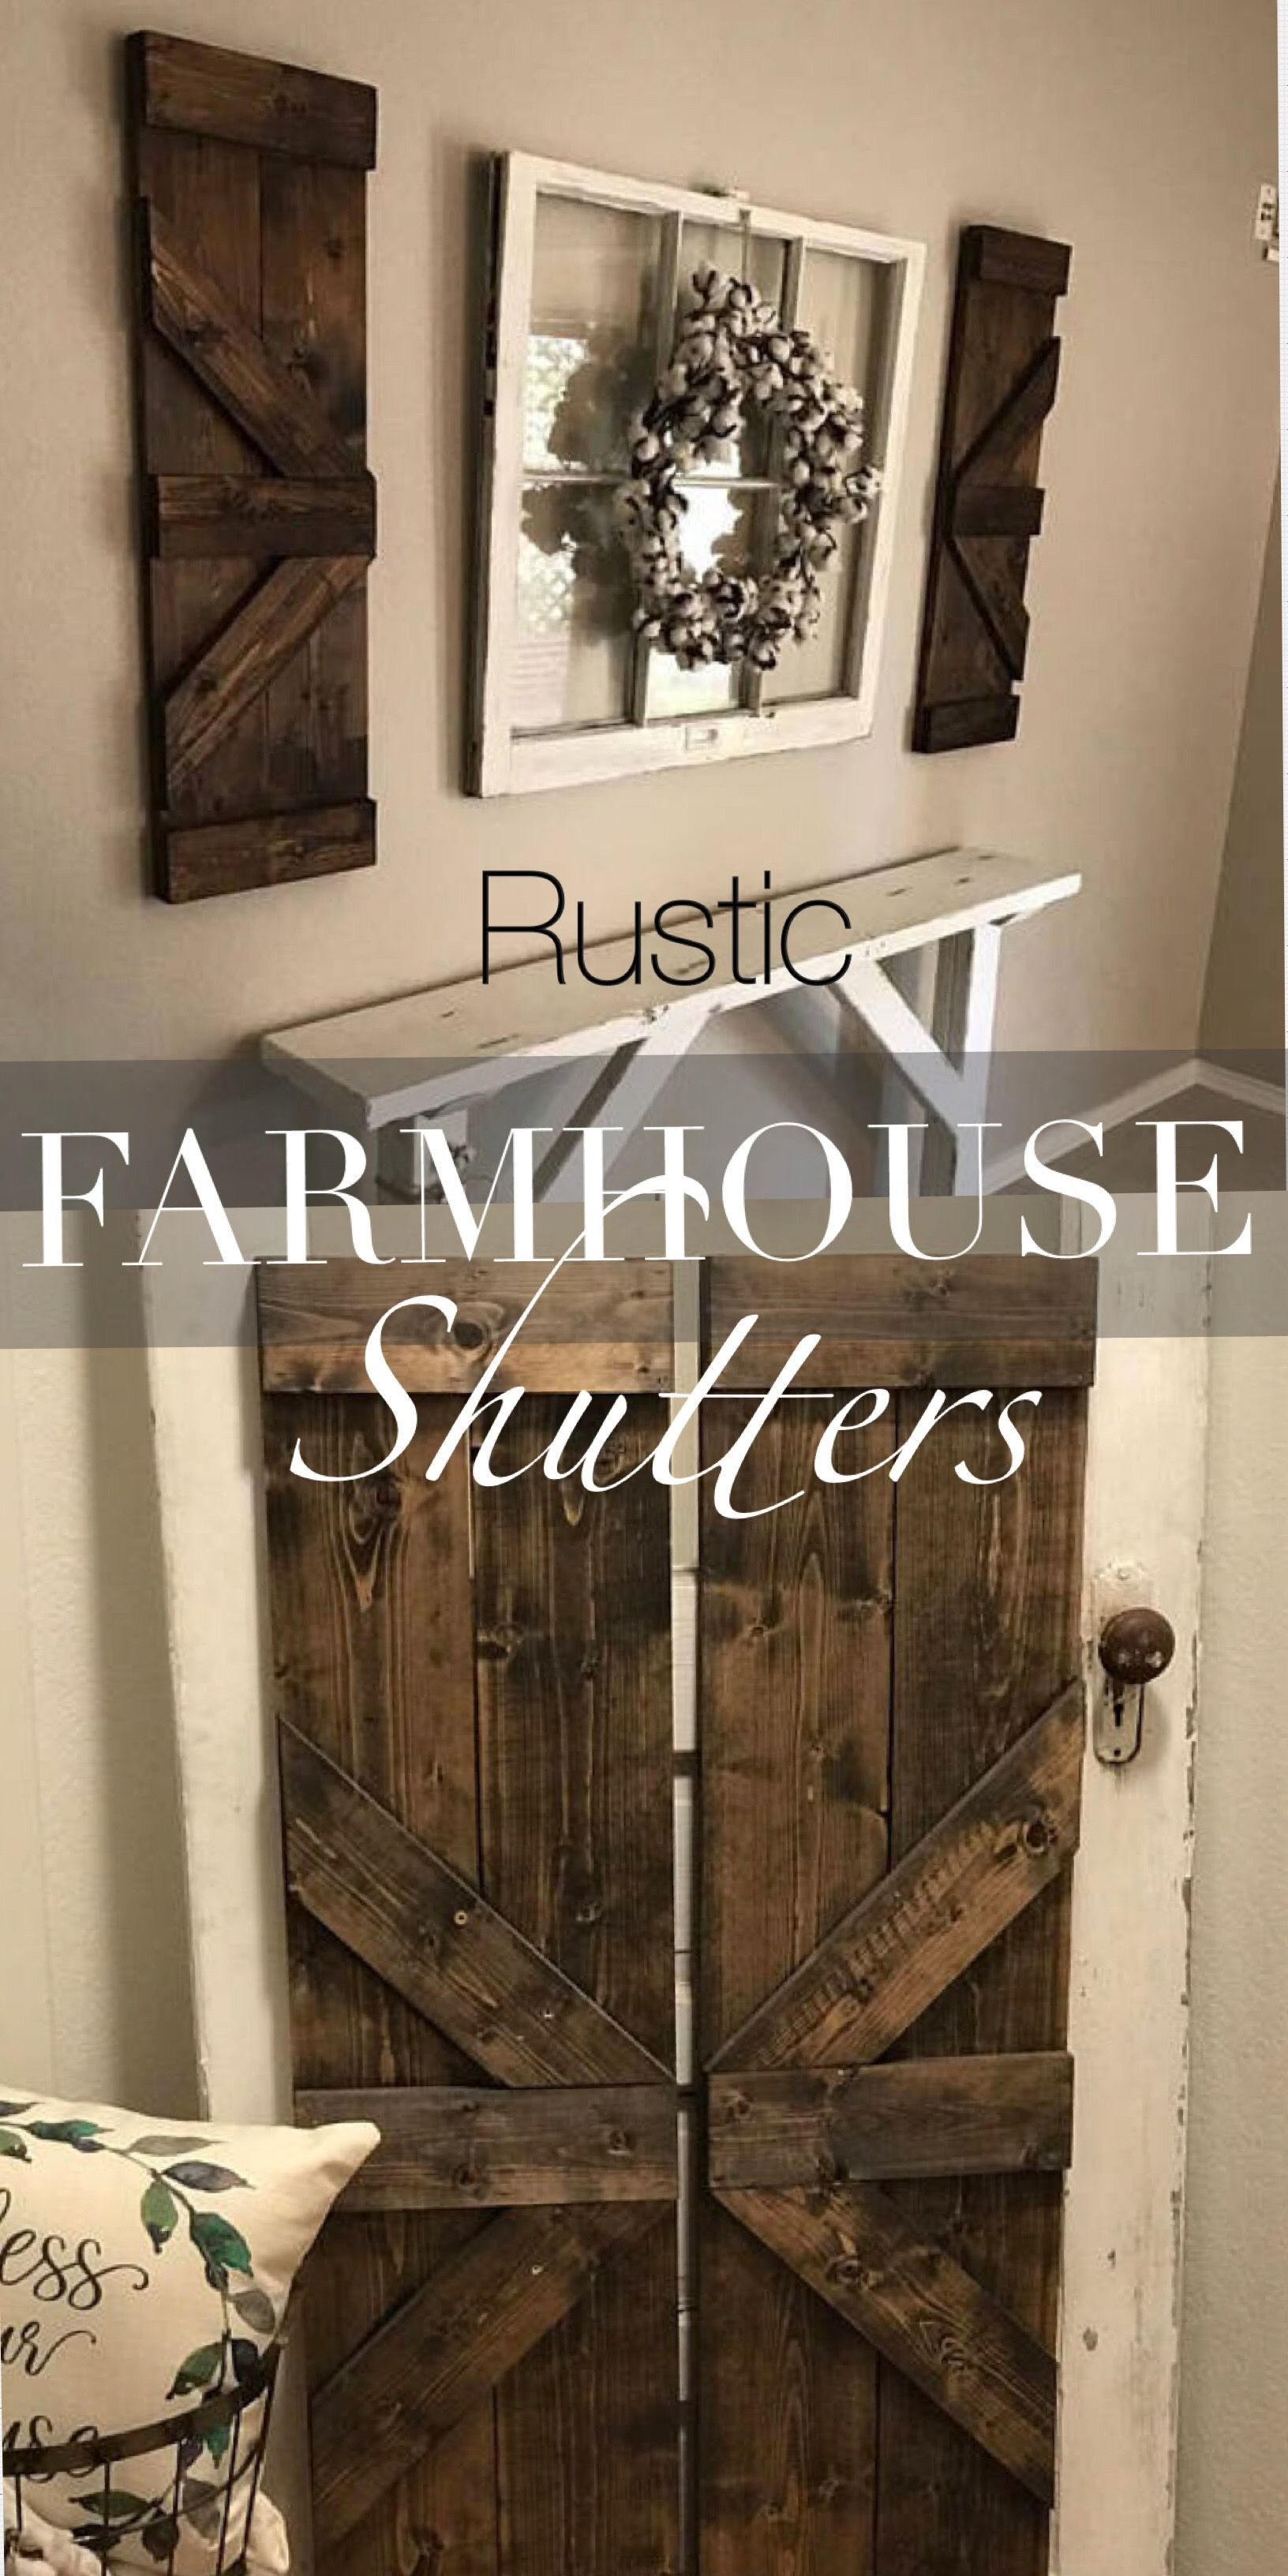 Ad Rustic Farmhouse Style Wood Shutters Perfect For Indoor And Outdoor Decor Put On Either Farm House Living Room Shutter Wall Decor Wall Decor Living Room